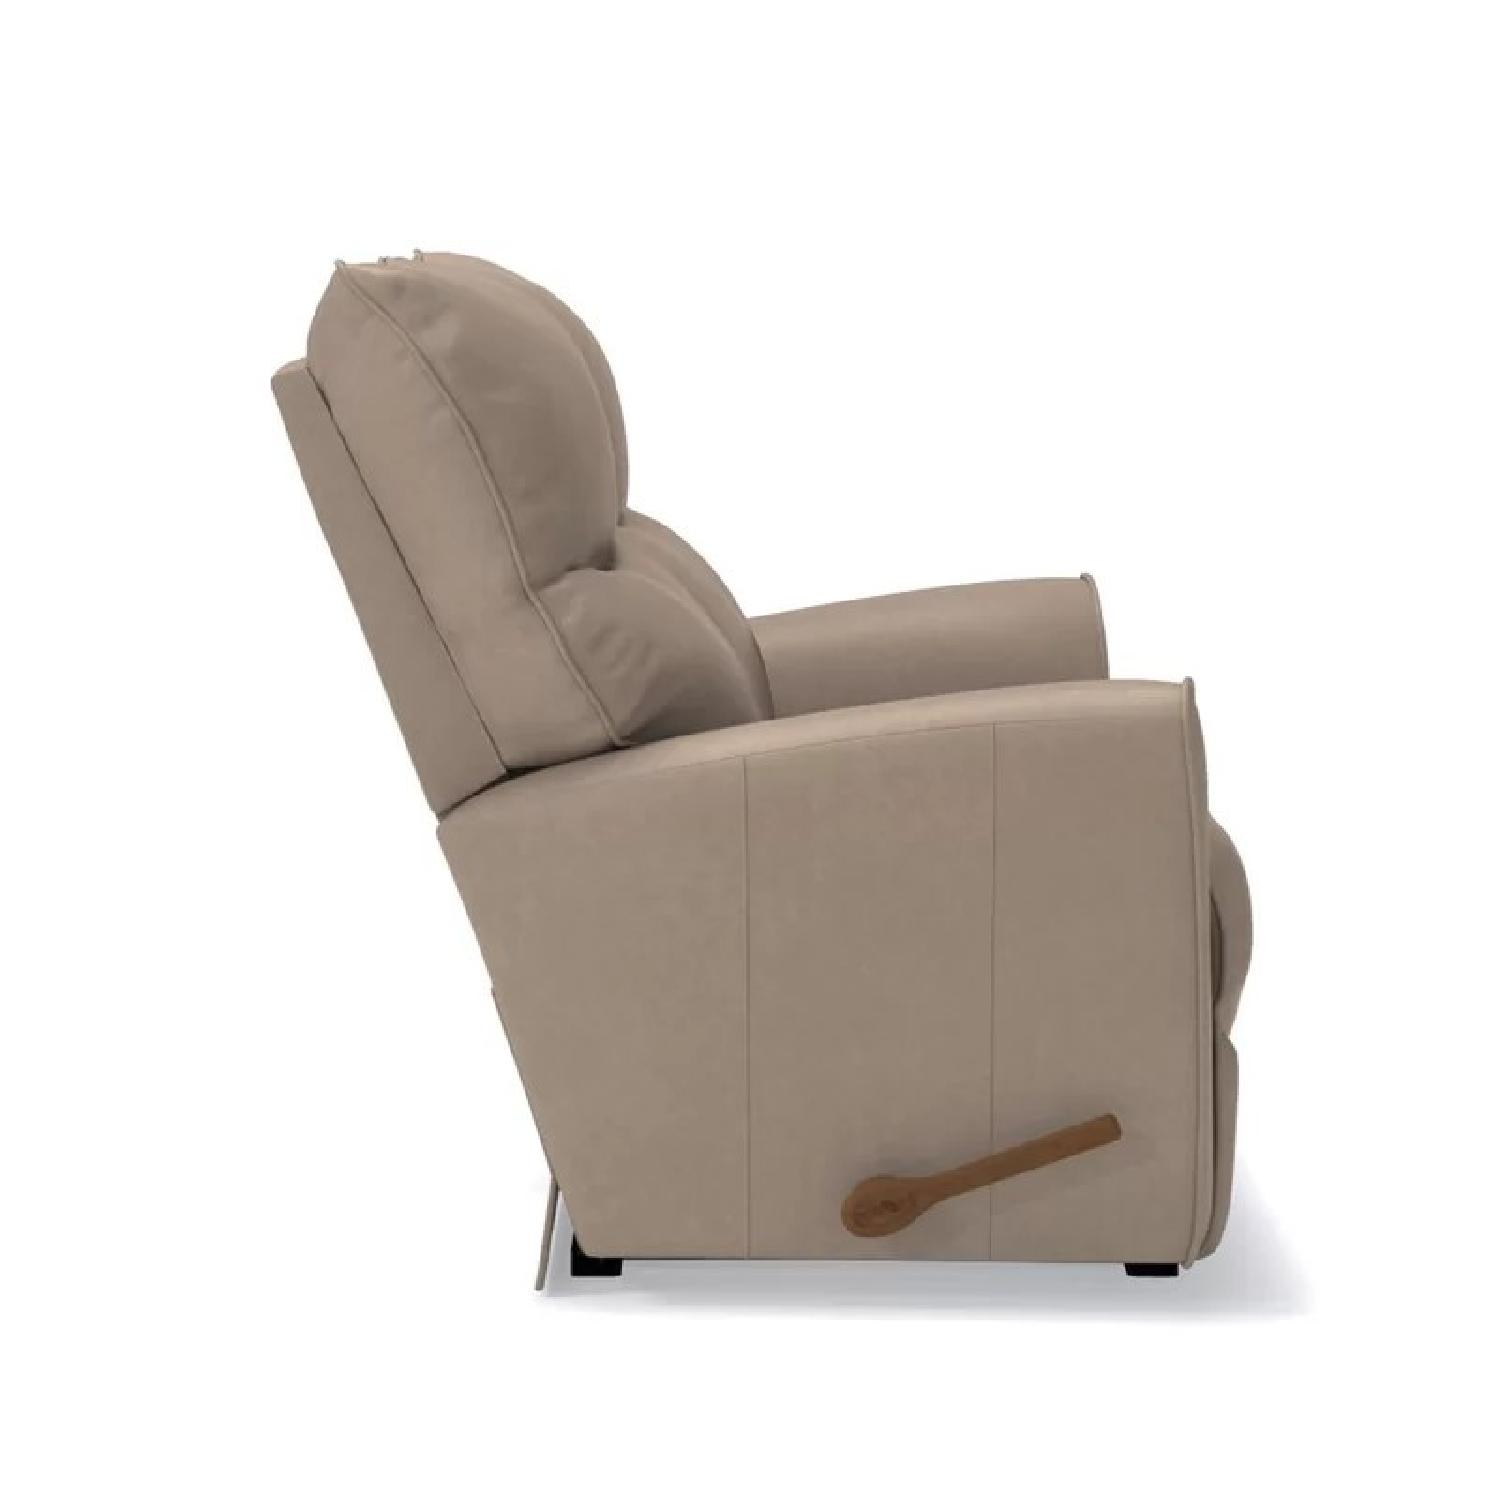 Super La Z Boy Rowan Leather Double Recliner Loveseat Aptdeco Caraccident5 Cool Chair Designs And Ideas Caraccident5Info